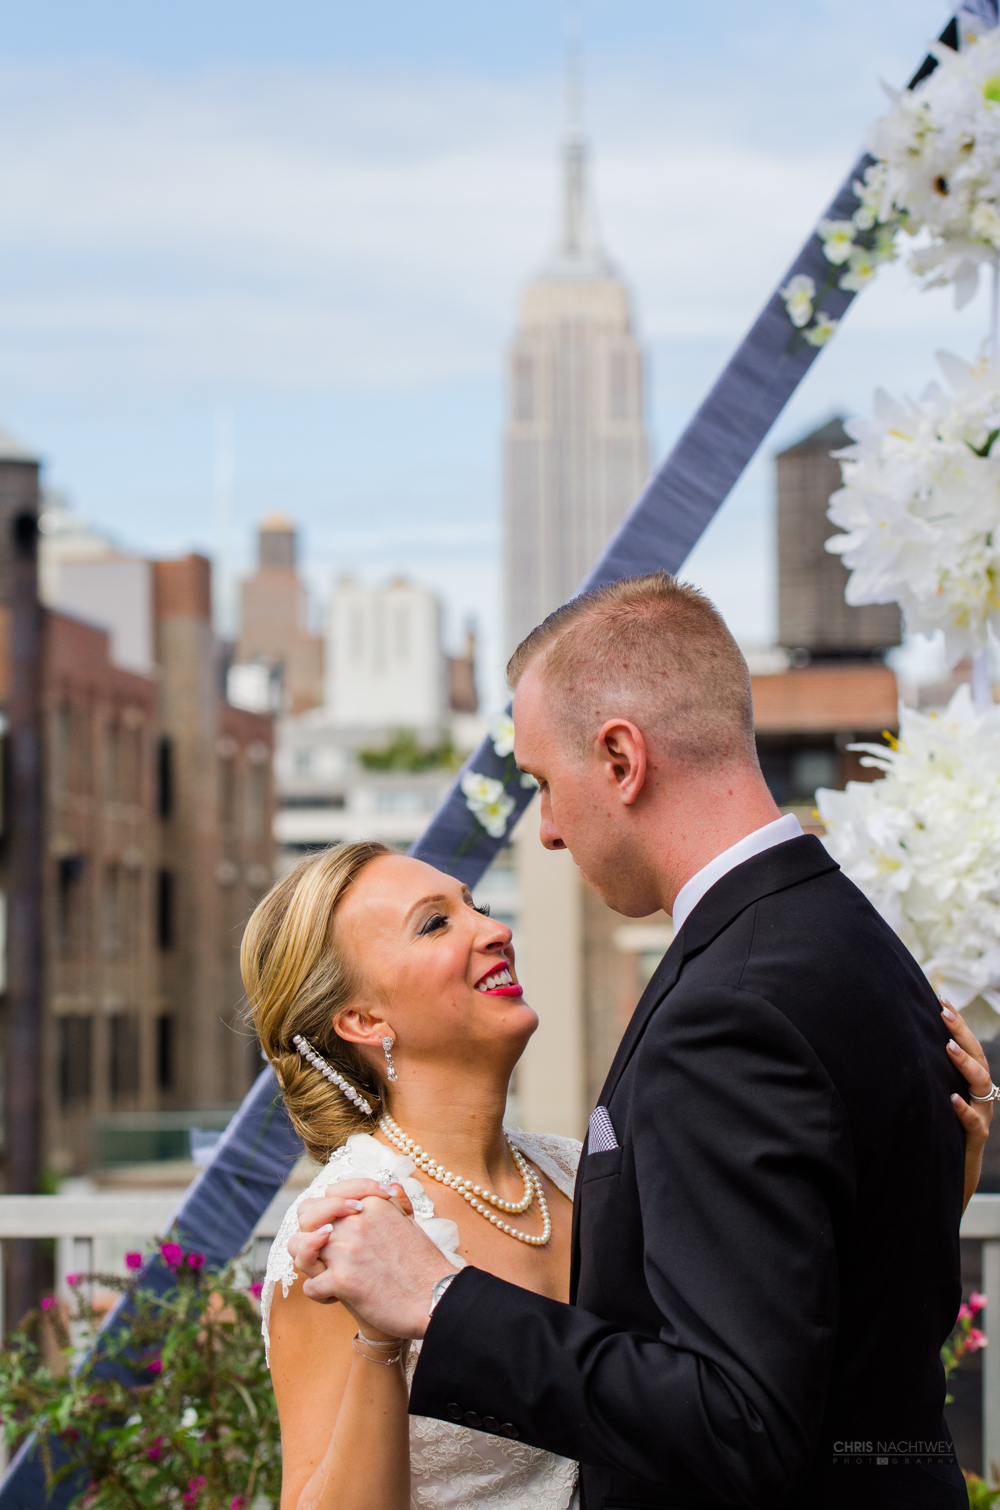 chris-nachtwey-new-york-city-wedding-photographer-first-dance.jpg